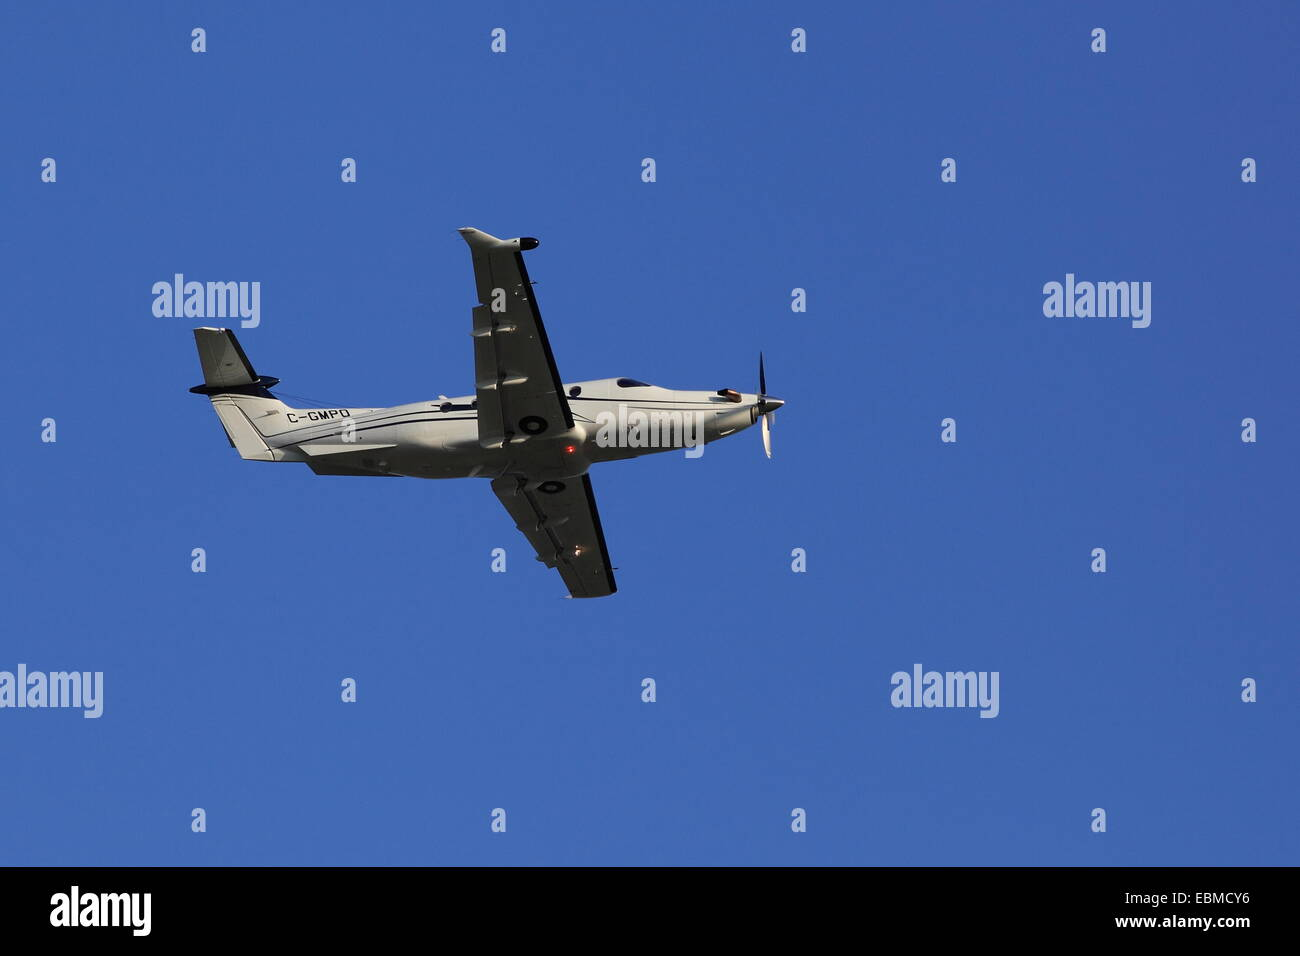 Pilatus PC-12 C-GMPO owned by RCMP, July 23, 2013 - Stock Image